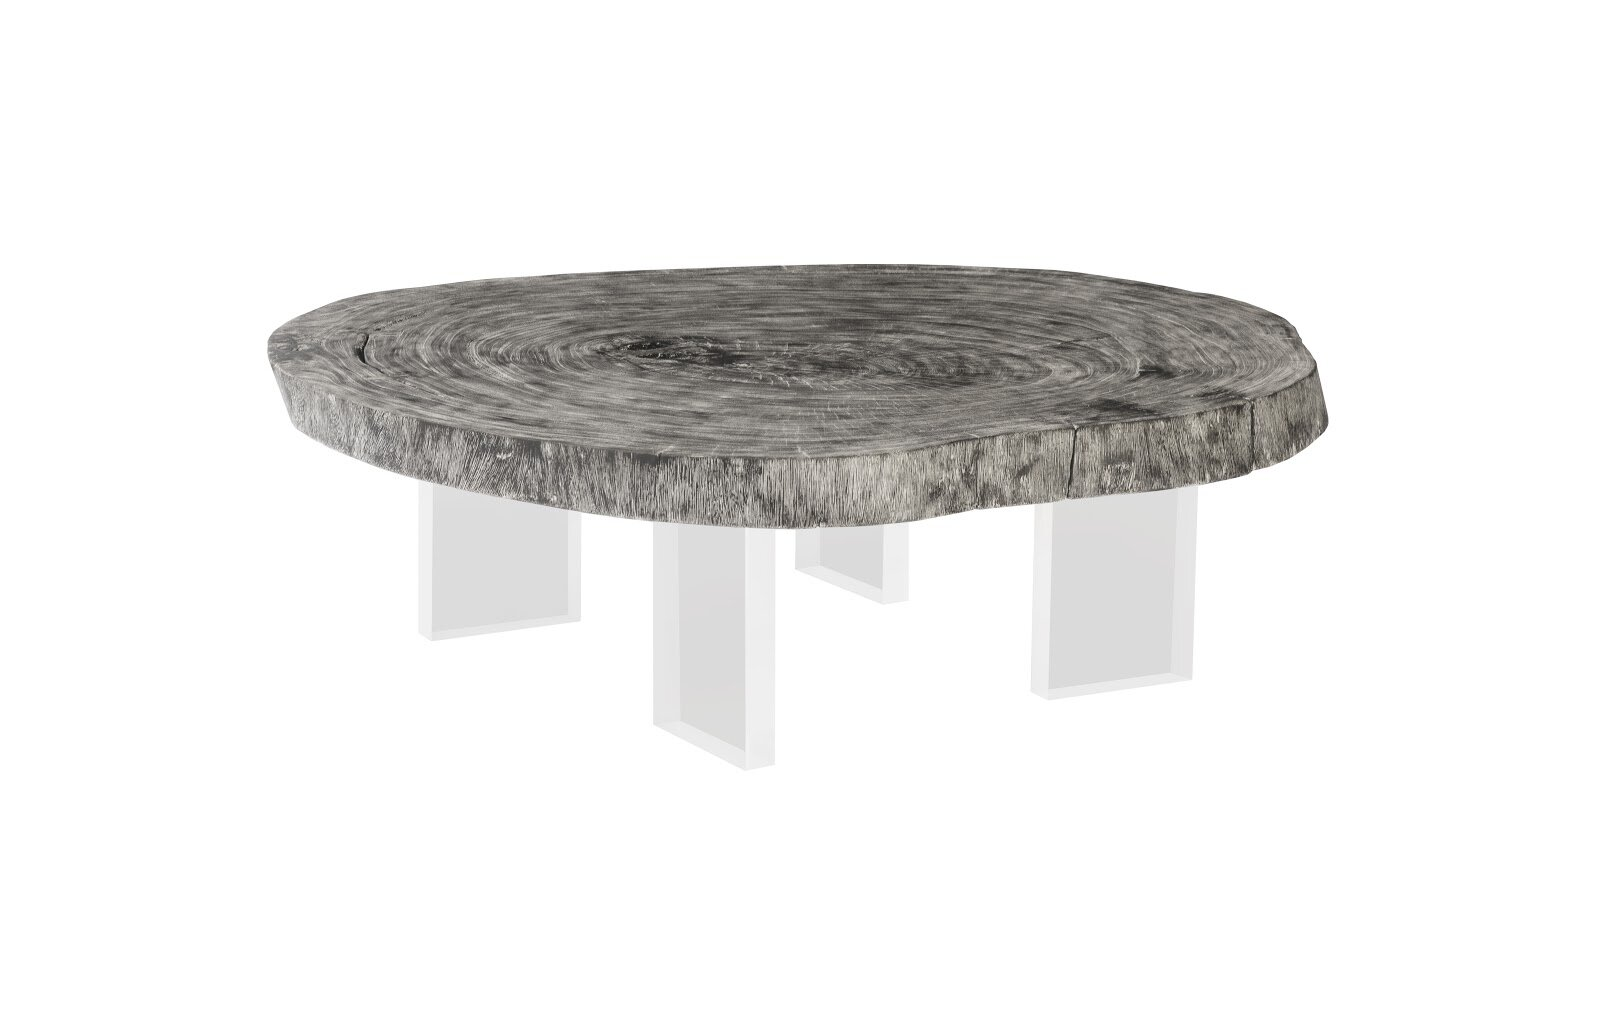 floating coffee table on acrylic legs chamcha wood grey stone size varies